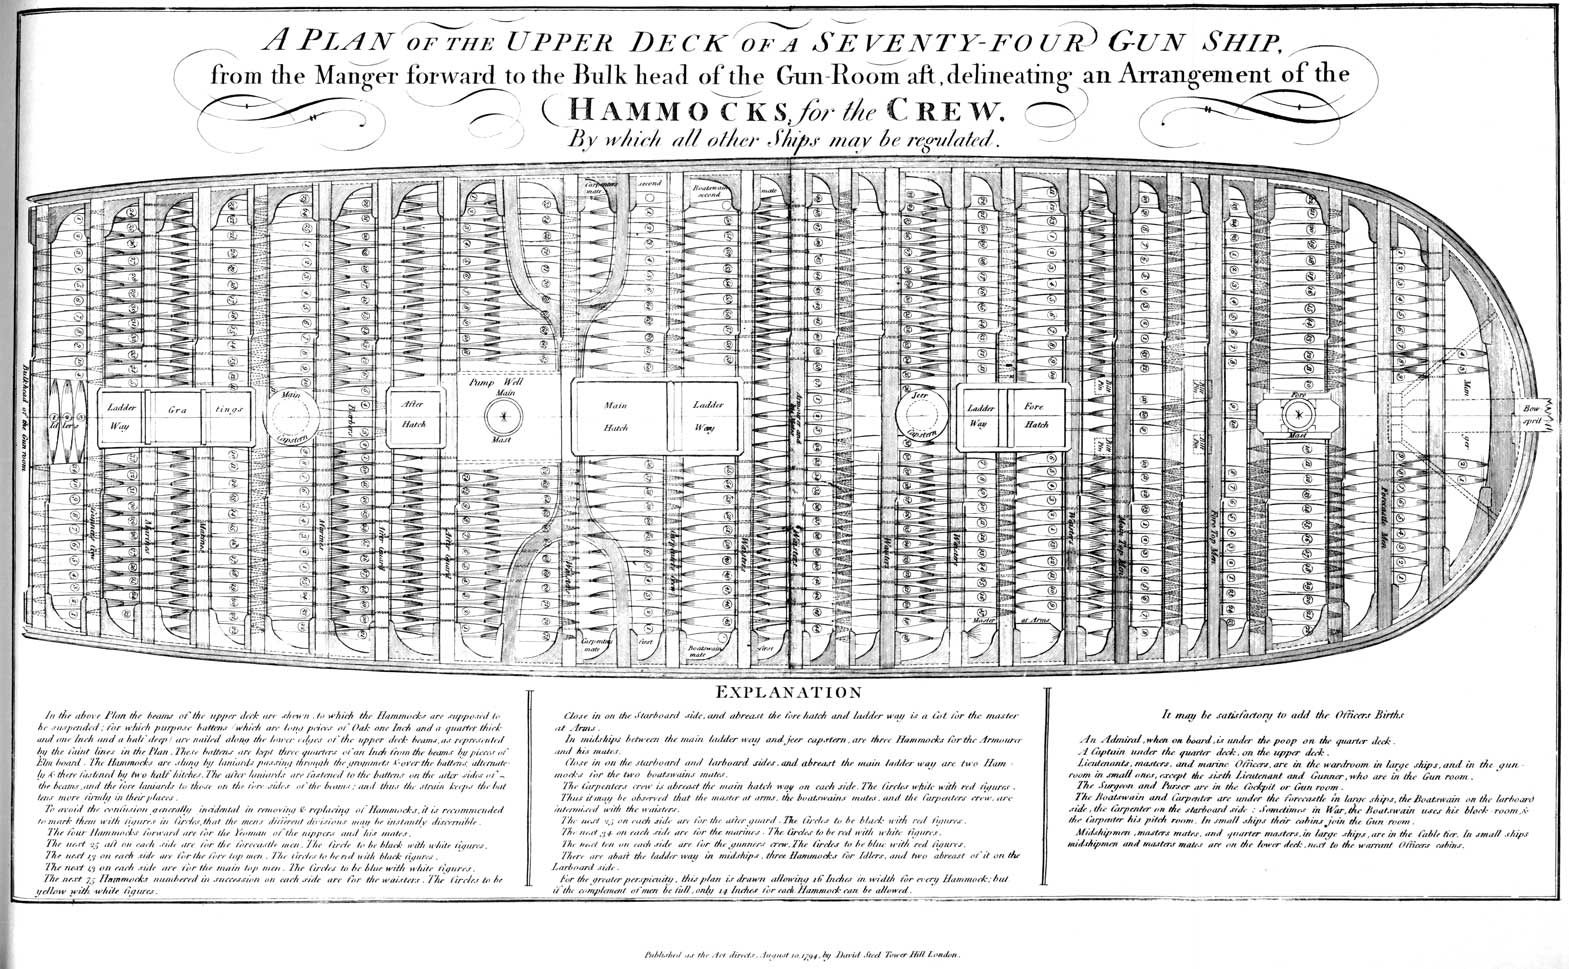 A Plan for the Upper deck Of A Seventy Four Gun Ship.<br /> Hammocks for the Crew<br /> EXPLANATION<br /> In the above Plan the beams of the upper deck are shewn to which the Hammocks are supposed to be suspended; for which purpose battens (which are long pieces of Oak on Inch and a quarter thick and one Inch and a half deep) are nailed along the lower edges of the upper deck beams, as represented by the faint lines in the Plan.  These battens are kept three quarters of an Inch from the beams by pieces of Elm board.  The Hammocks are slung by laniards passing through the grommets over the battens alternately there fastened by two half hitches.  The after laniards are fastened to the battens on the after-sides of the beams, and the fore laniards to those on the fore-sides of the beams; and thus the strain keeps the battens more firmly in their places.<br /> To avoid confusion generally incidental in removing and replacing of hammocks, it is recommended to mark them with figures in Circles, that the mens different divisions may be instantly discernible.<br /> The four Hammocks forward are for Yeoman of the nippers and his mates.<br /> The next 25 aft on each side are for the forecastle men.  The Circle to be black with white figures.<br /> The next 13 on each side are for the fore top men.  The Circles to be red with black figures.<br /> The next 13 on each side are for the main top men.  The Circles to be blue with white figures.<br /> The next Hammocks numbered in succession on each side are for the waisters.  The Circles to be yellow with white figures.</p> <p>Close in on the Starboard side, and abreast the fore hatch and ladder way is a Cot for the master of Arms.<br /> In midships between the main ladder way and the jeer capstern, are three Hammocks for the Armourer and his mates.<br /> Close in on the starboard and larboard sides, and abreast the main ladder way are two Hammocks for the two boatswains mates.<br /> The Carpenters crew is abreast the main hatch wa